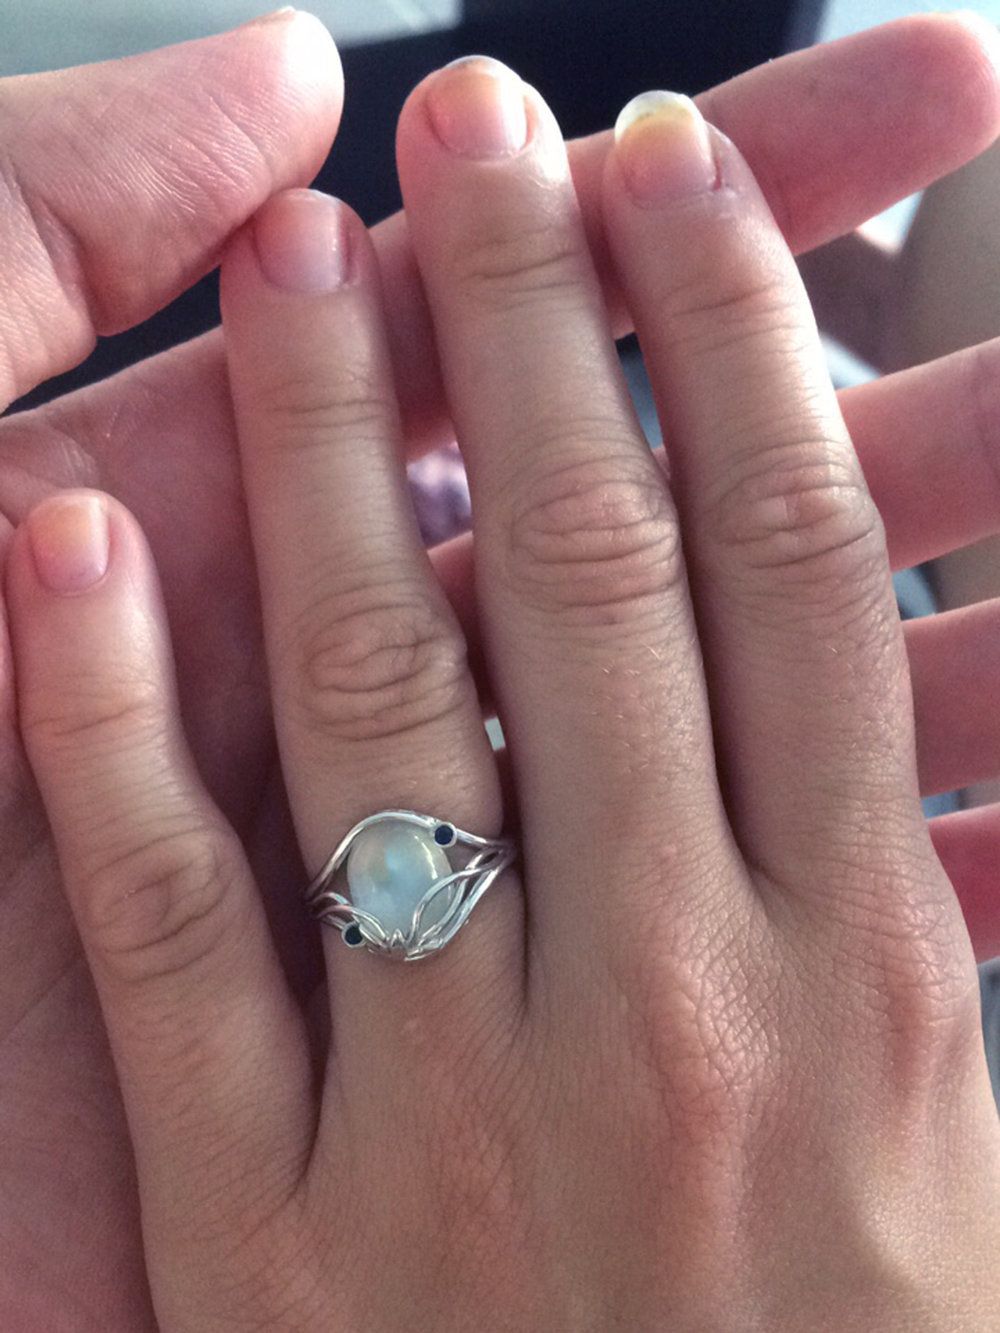 Alice's hand held by Michael's, showing off her new Elvish Moonstone engagement ring by Takayas